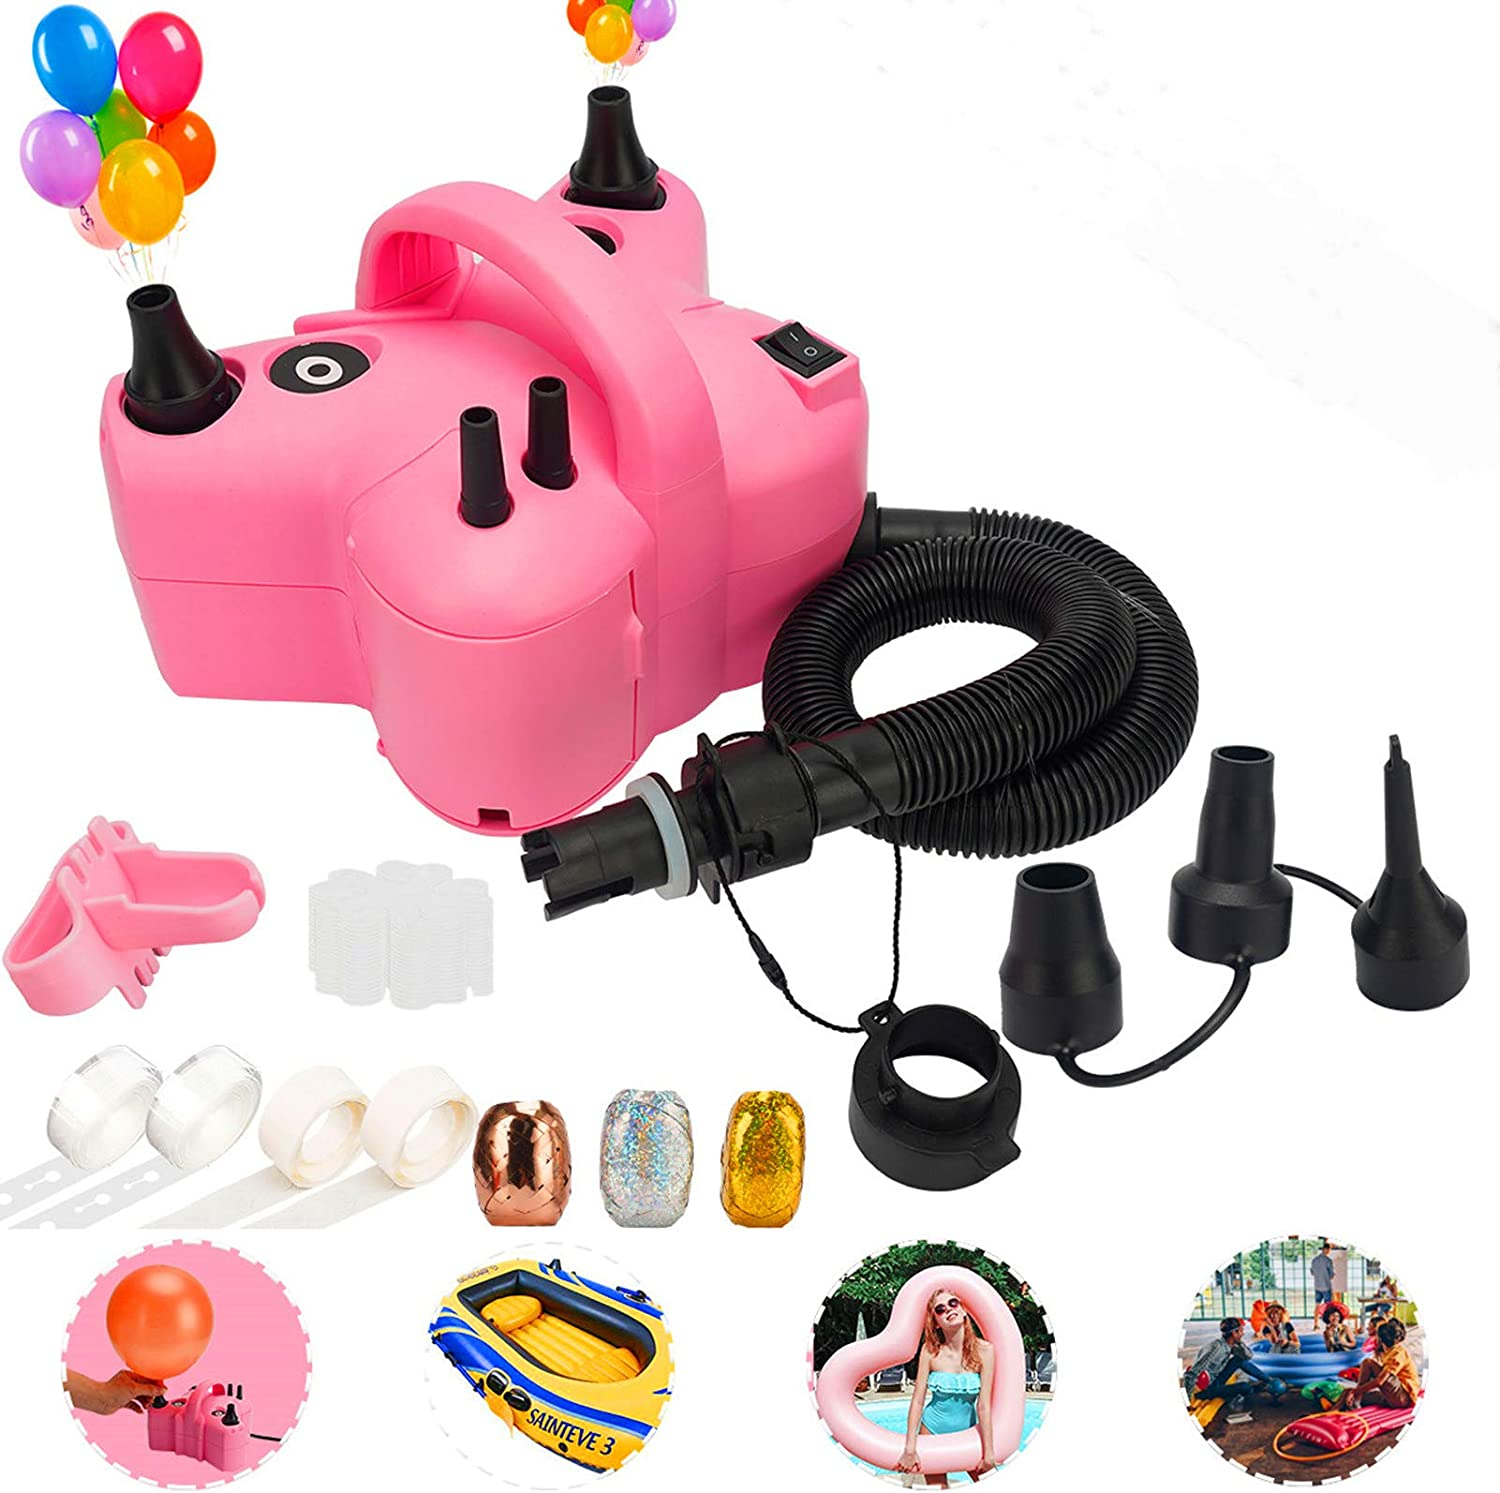 Electric Balloon Pump,Portable Dual Nozzle Pink 110V 600W Electric Balloon Blower / Inflator with Multipurpose Hose Extension and Nozzles for Inflatables Couch,Pool Floats,Compression Bag,Bonus Tying Tool,Flower Clips,Tape Strip,Colored Ribbons and Dot Glues for Party Decoration